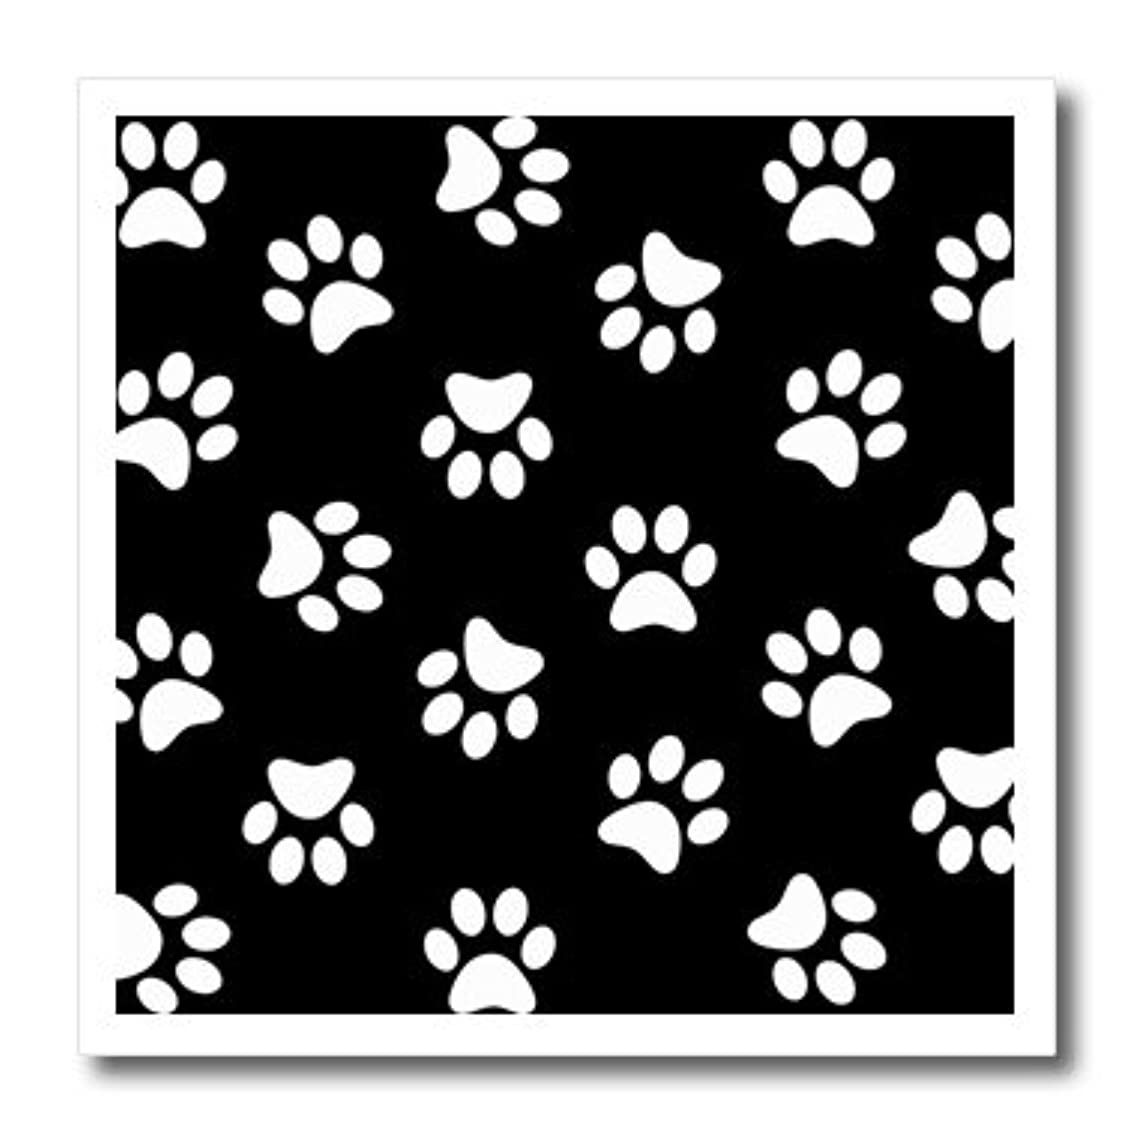 3dRose Black Paw Print Pattern-Pawprints-Cute Cartoon Animal eg Dog or cat Footprints-Iron On Heat Transfer, 8 by 8-inch, for White Material (ht_161522_1)